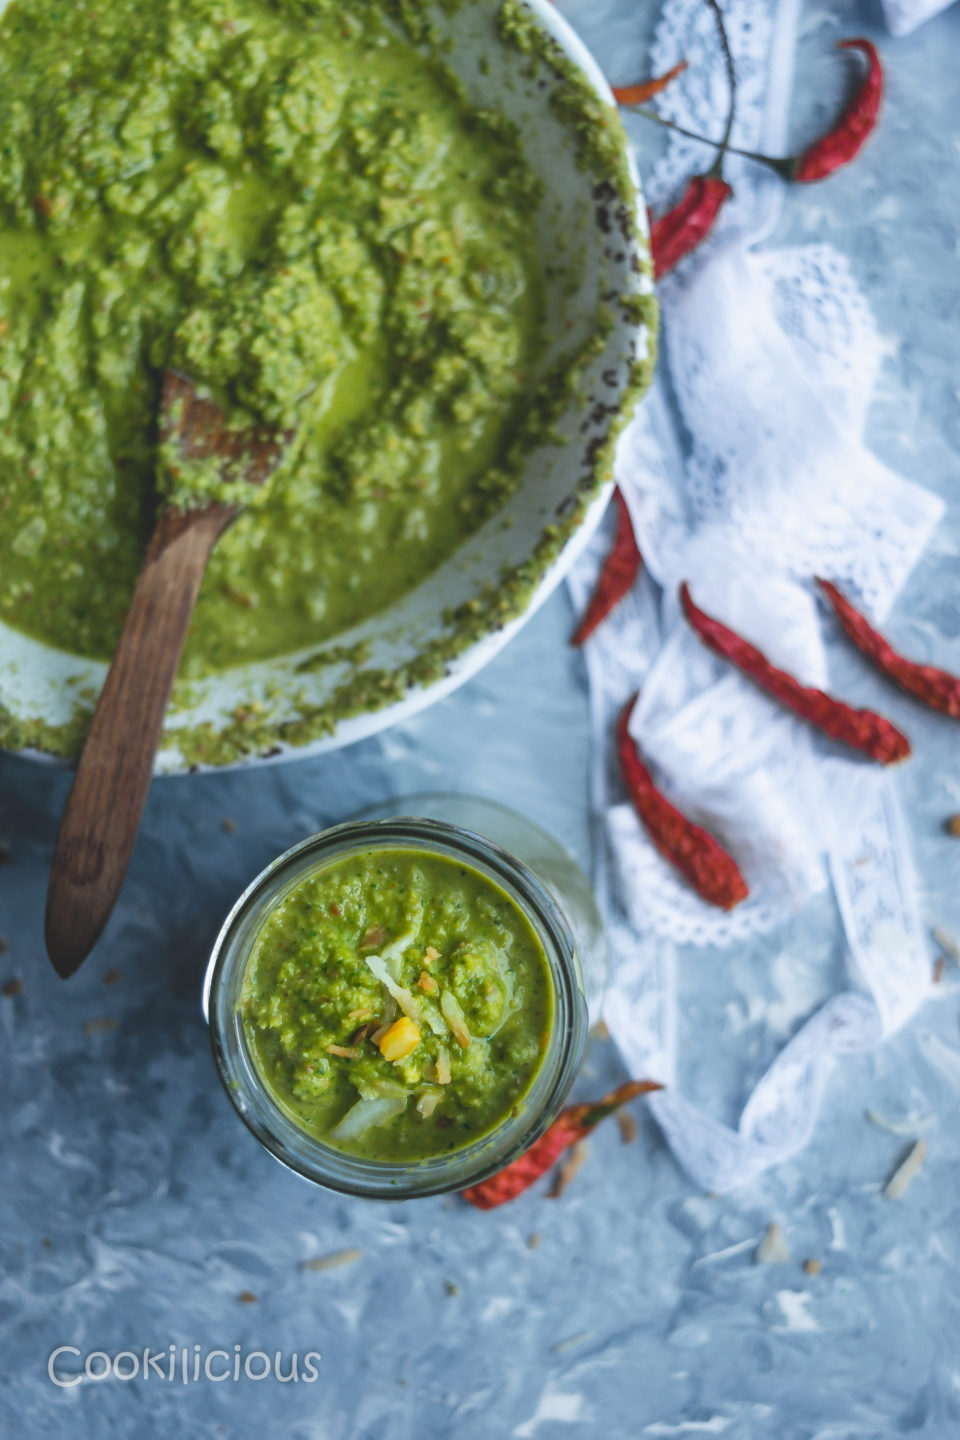 top shot of half a bowl with a wooden spoon and a bottle both filled with Indian Green Chutney with Leftover Lettuce Leaves